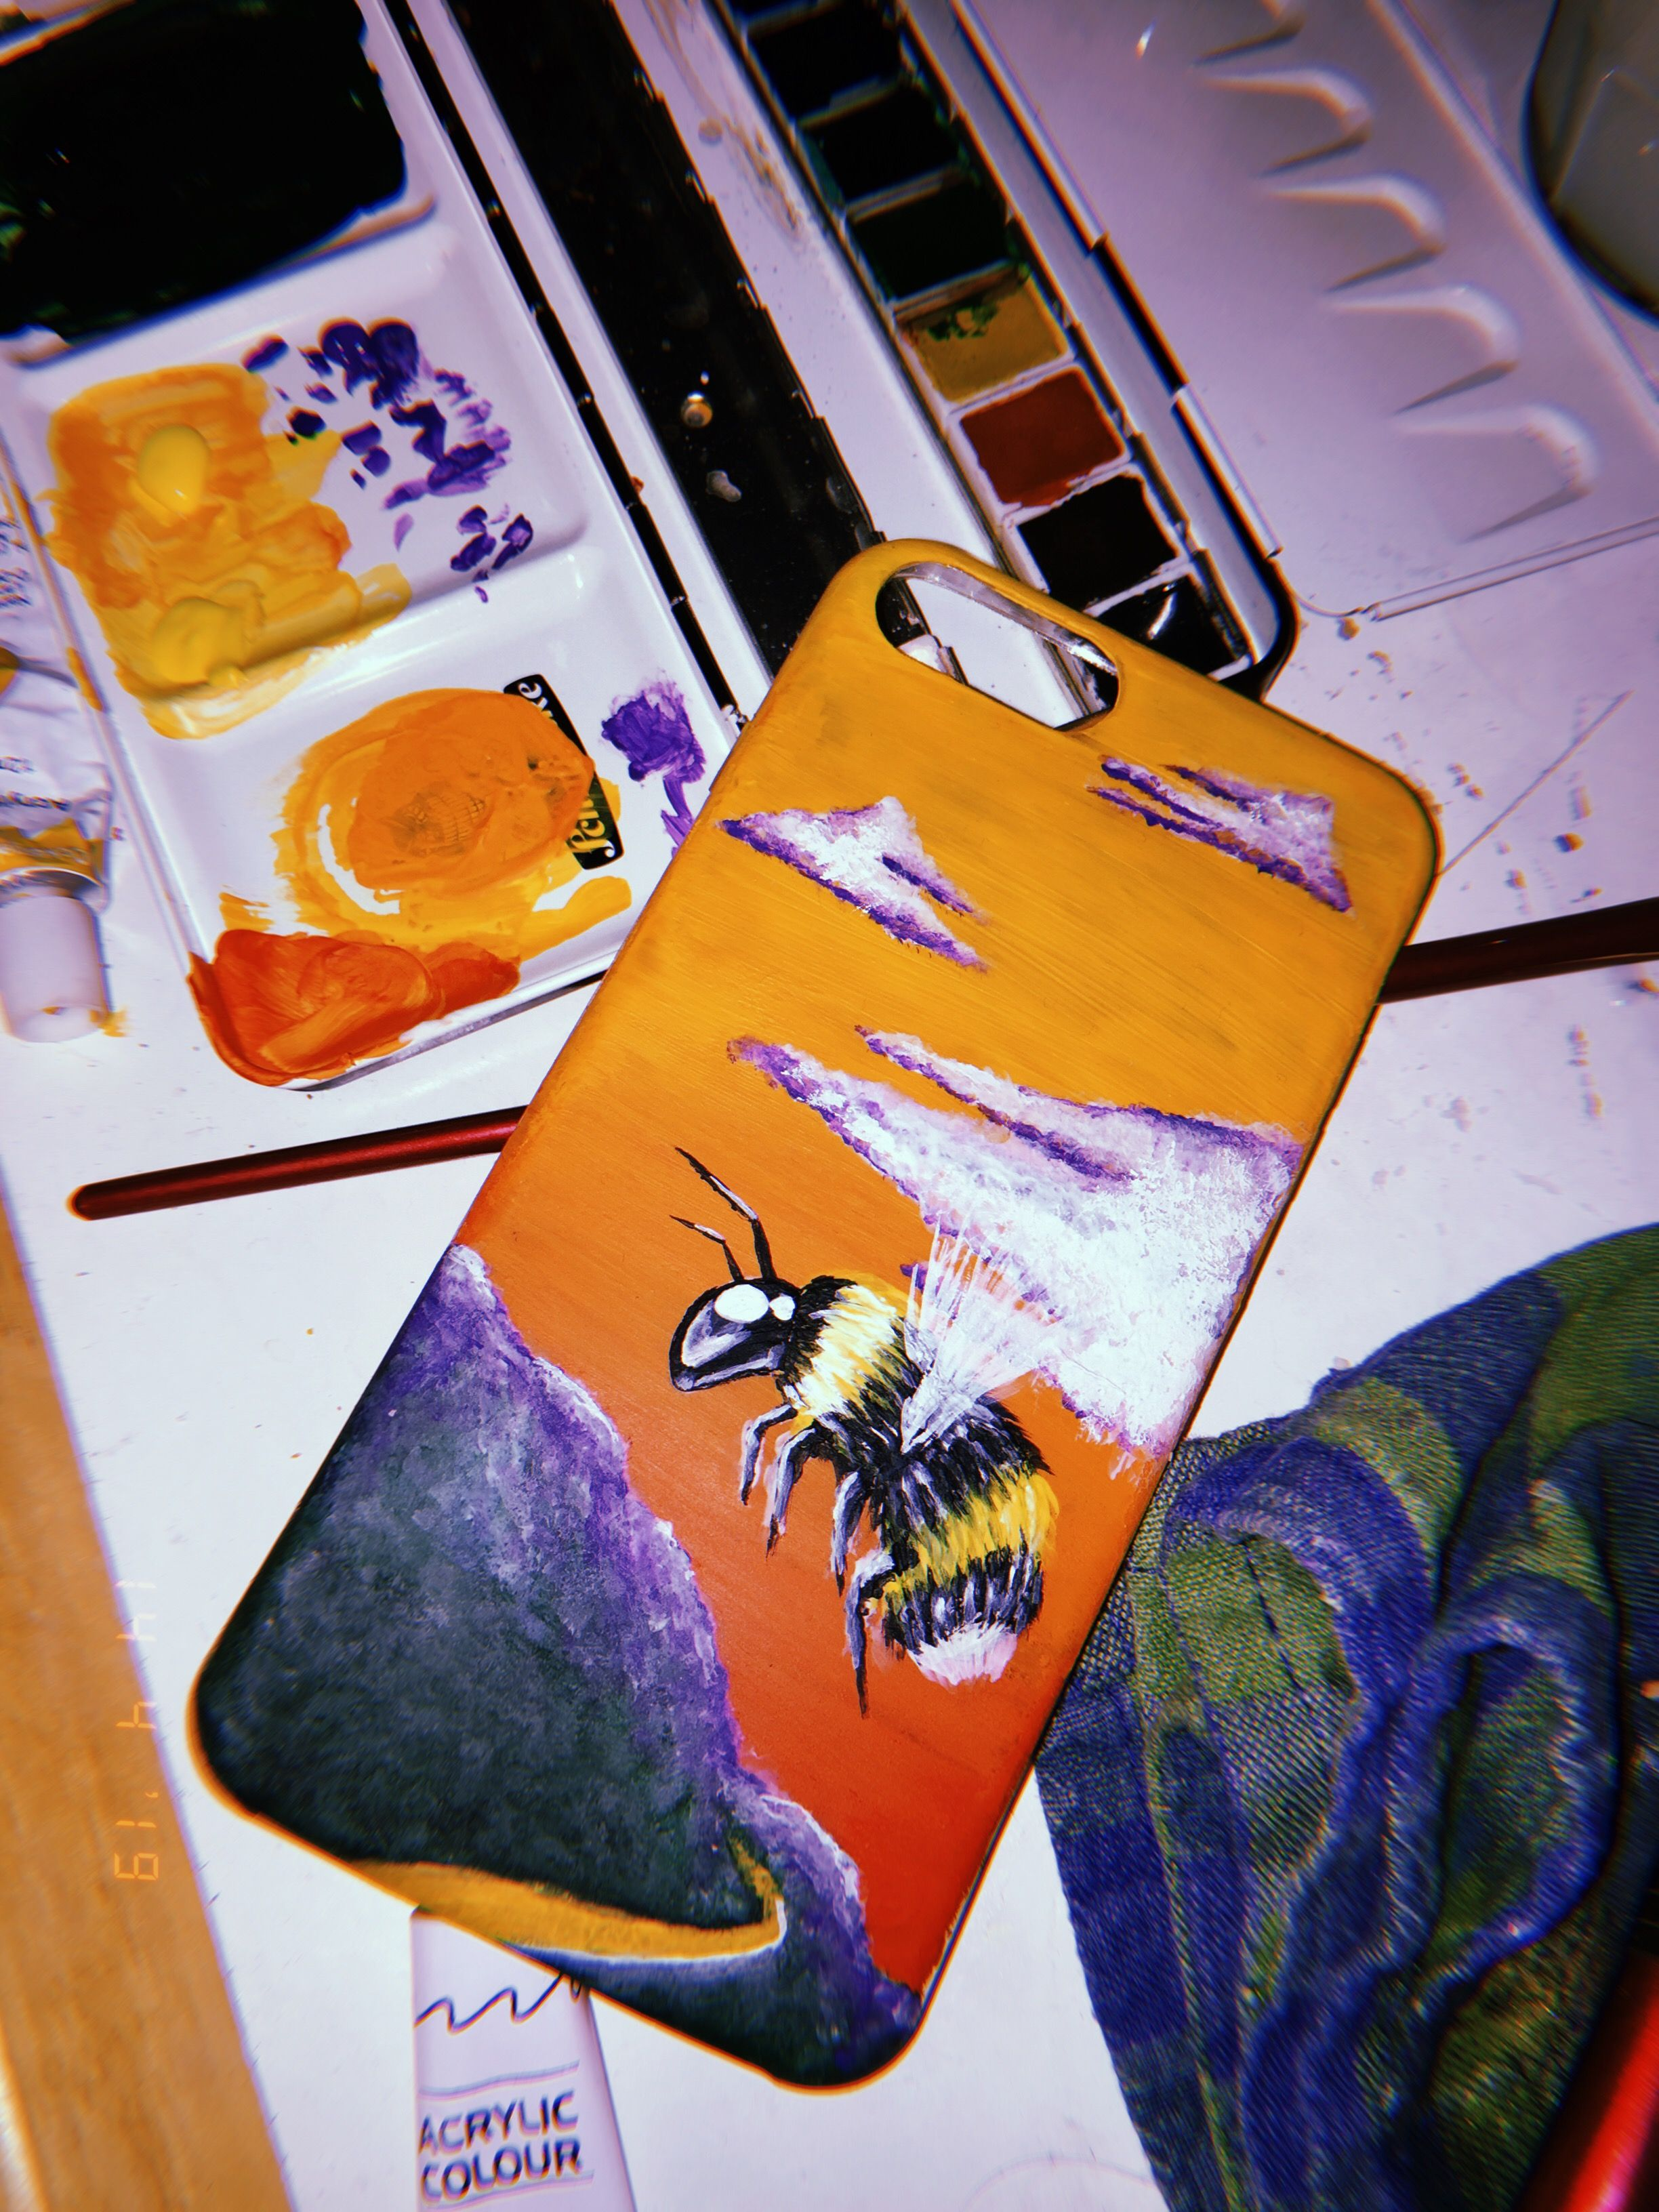 Phone case diy paint image by M I A